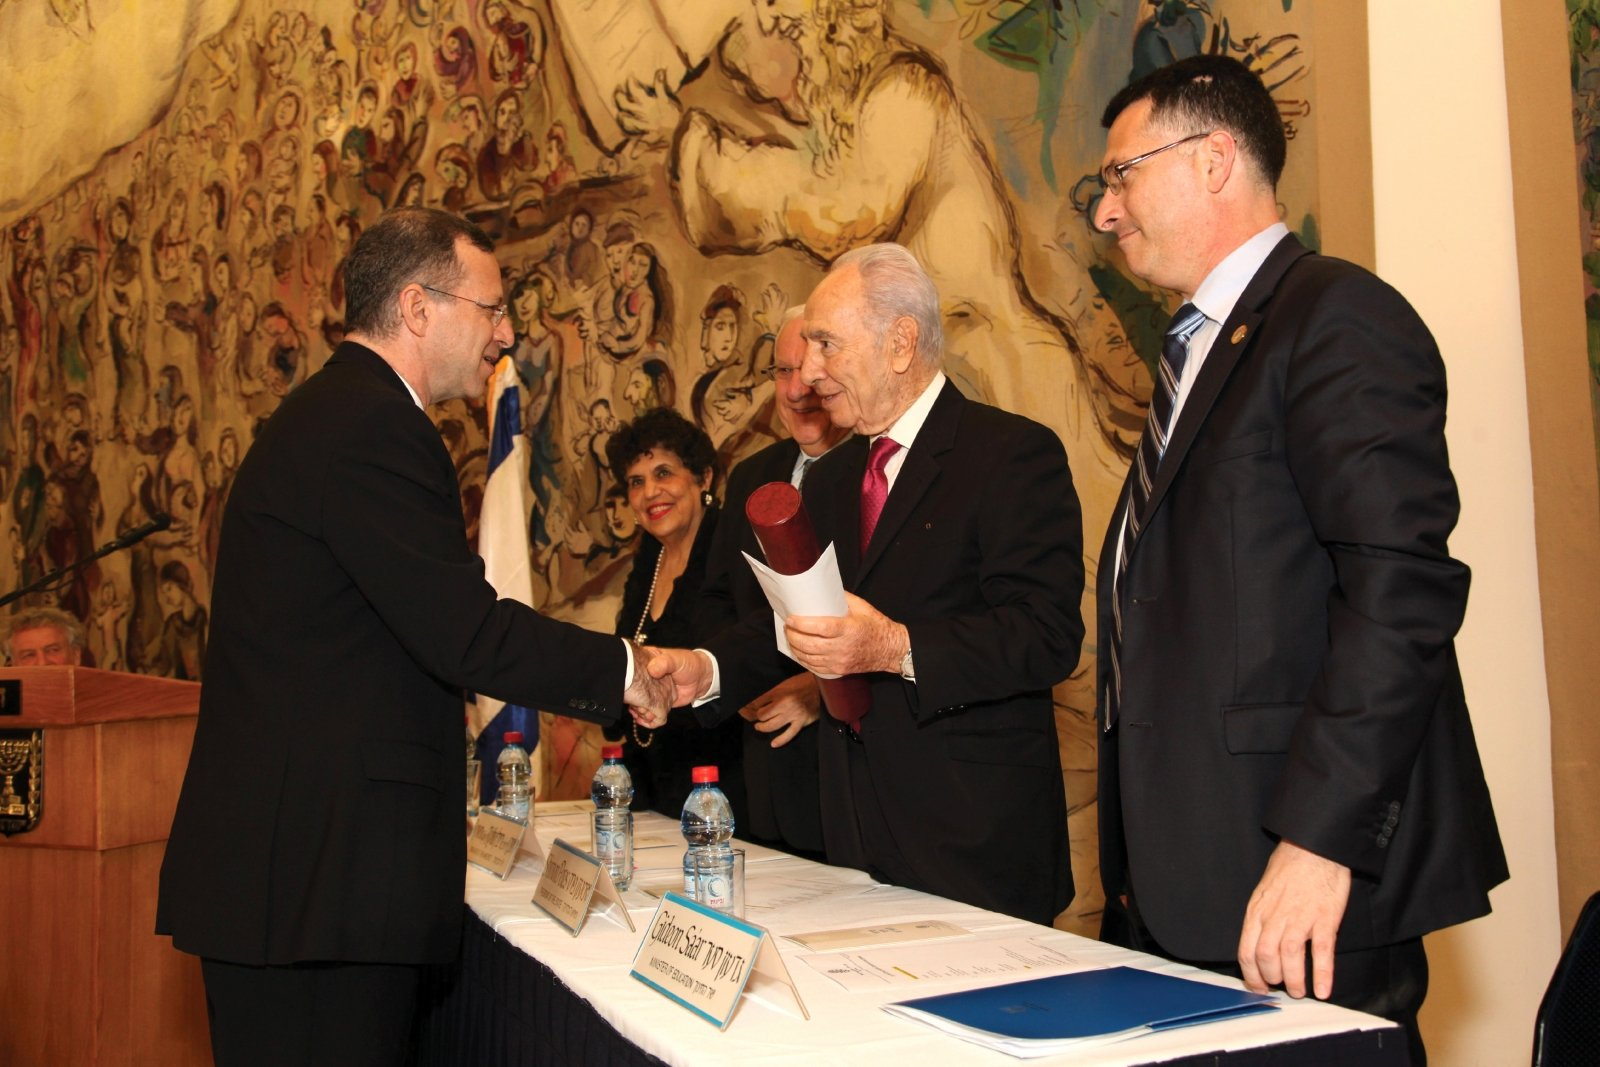 Lewin receives the Wolf Prize in agriculture from Israeli President Shimon Peres in 2011 in Jerusalem. (Photo courtesy of Harris Lewin)